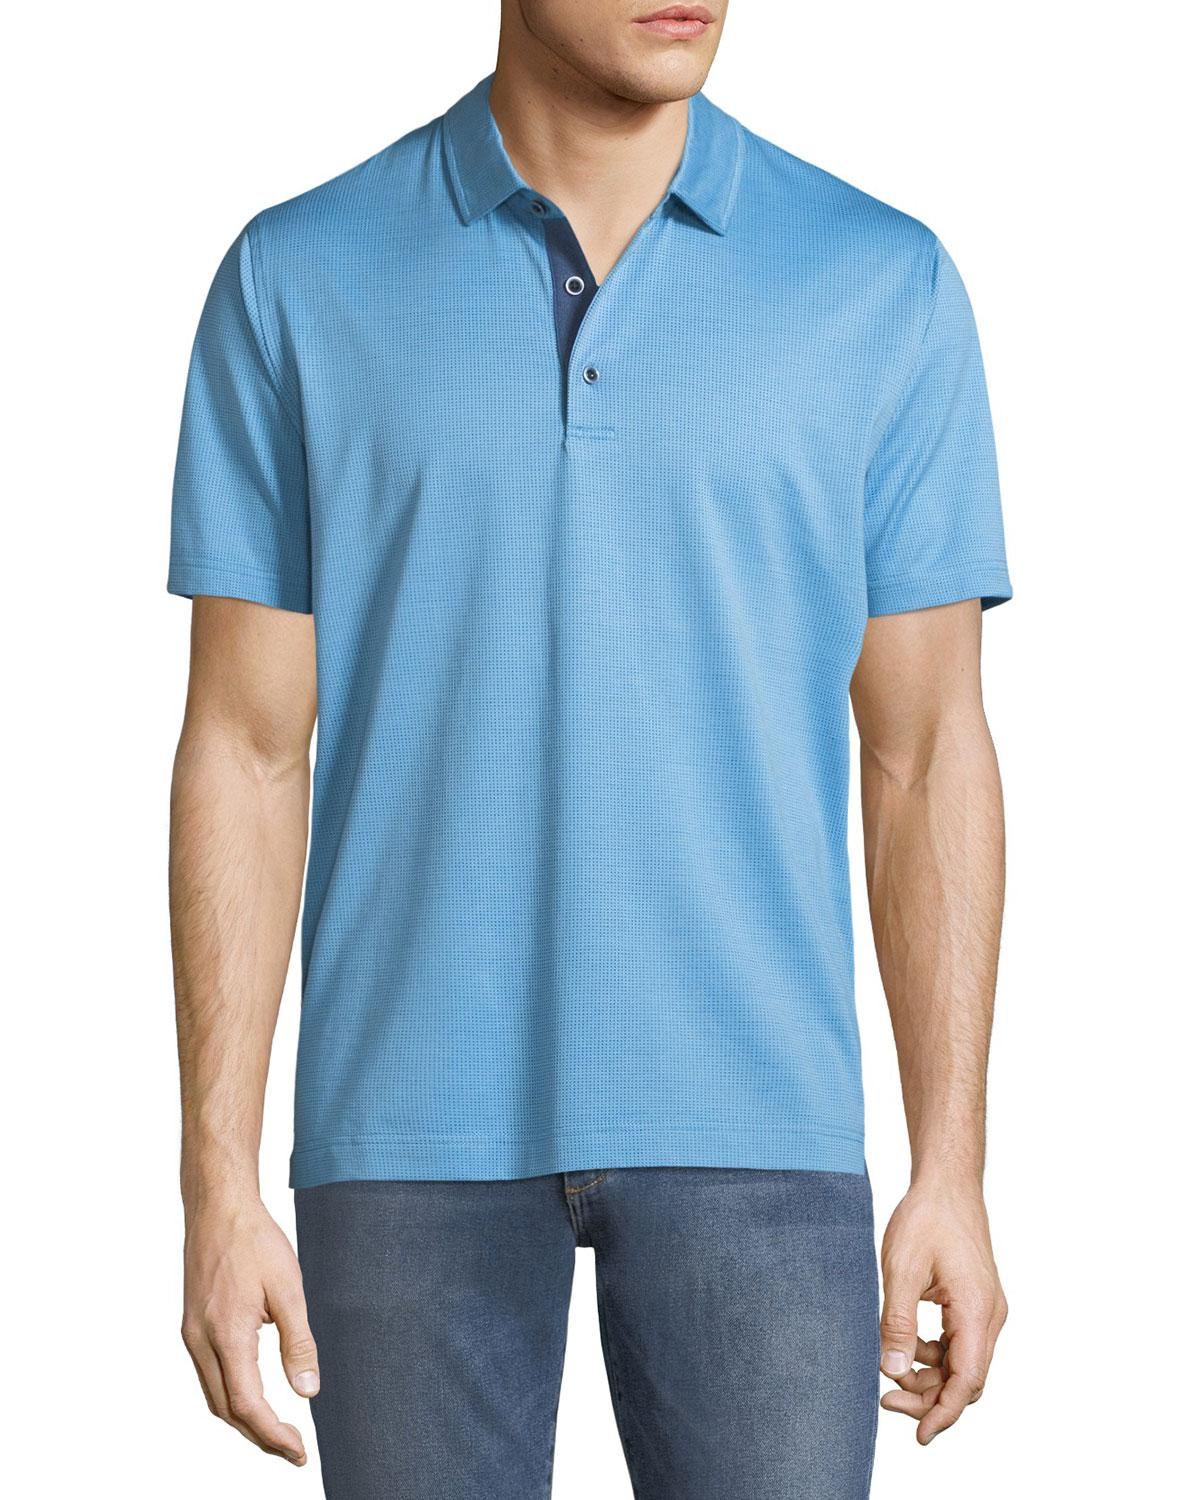 85eac194 Lyst - Robert Graham Turnell Dot-jacquard Knit Polo Shirt in Blue ...